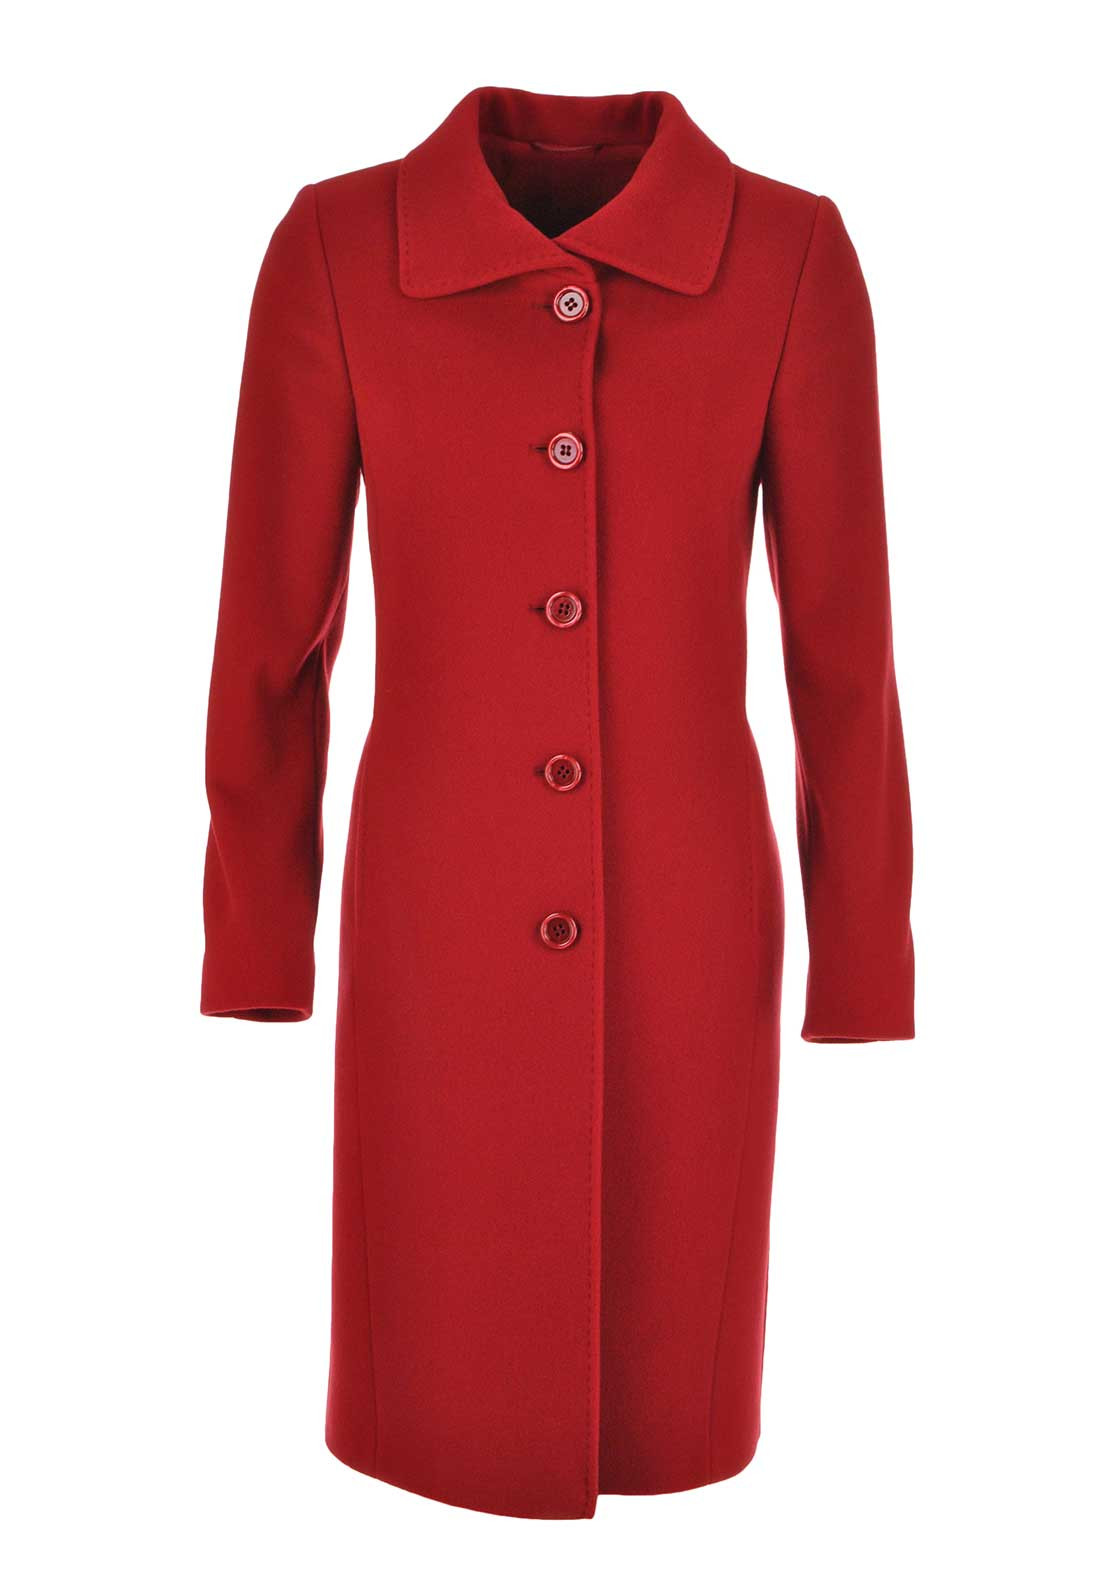 Christina Felix Single Breasted Wool and Cashmere Blend Coat, Red